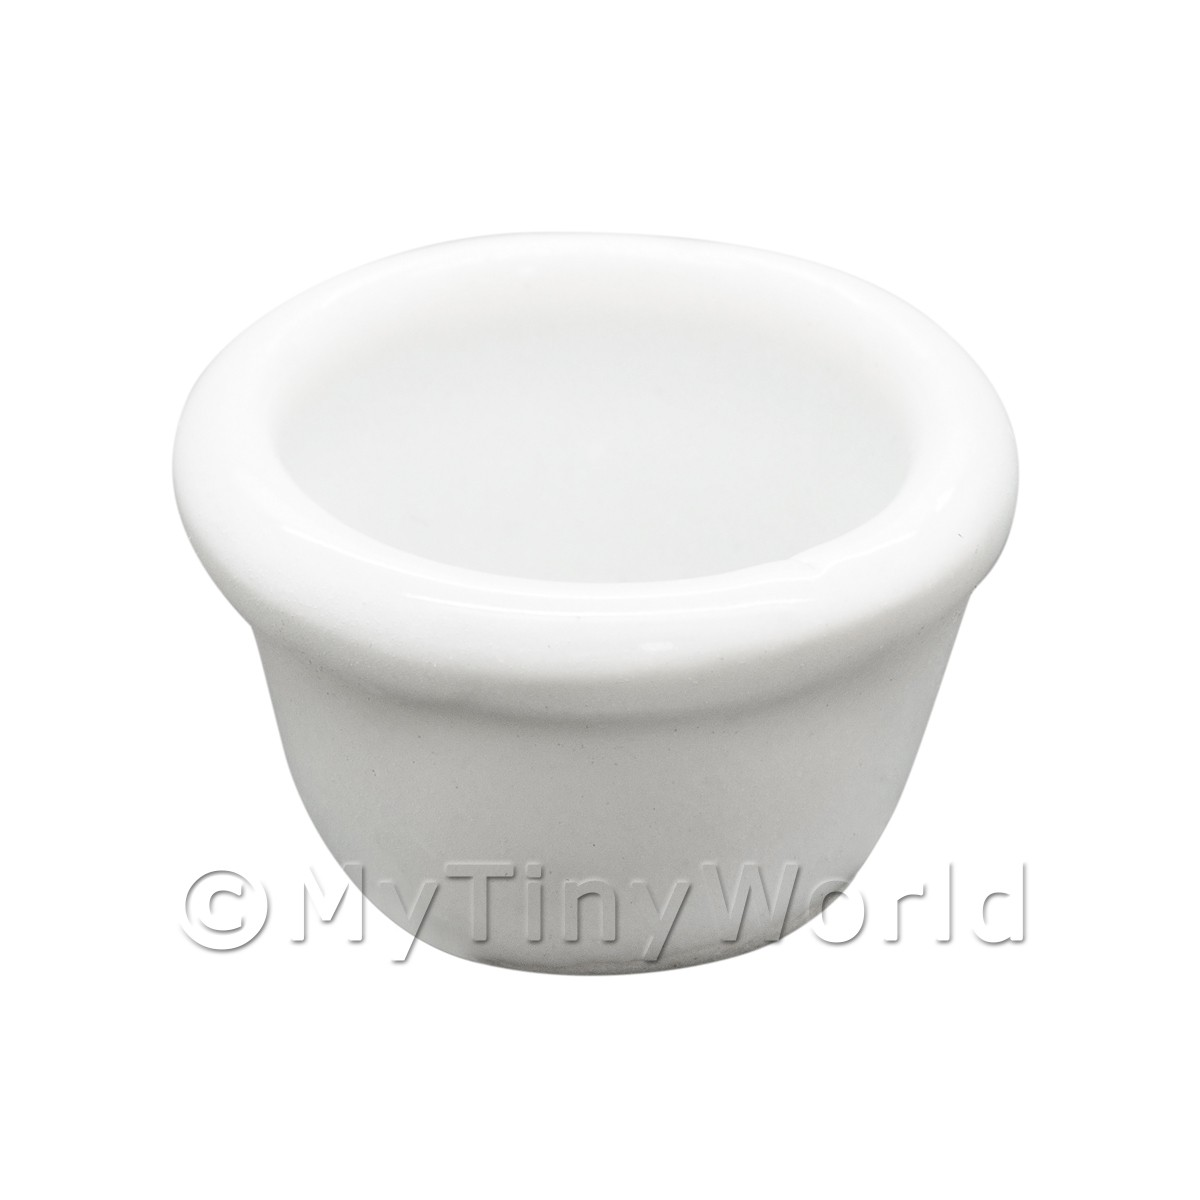 Dolls House Miniature White Glazed Ceramic Flower Pot